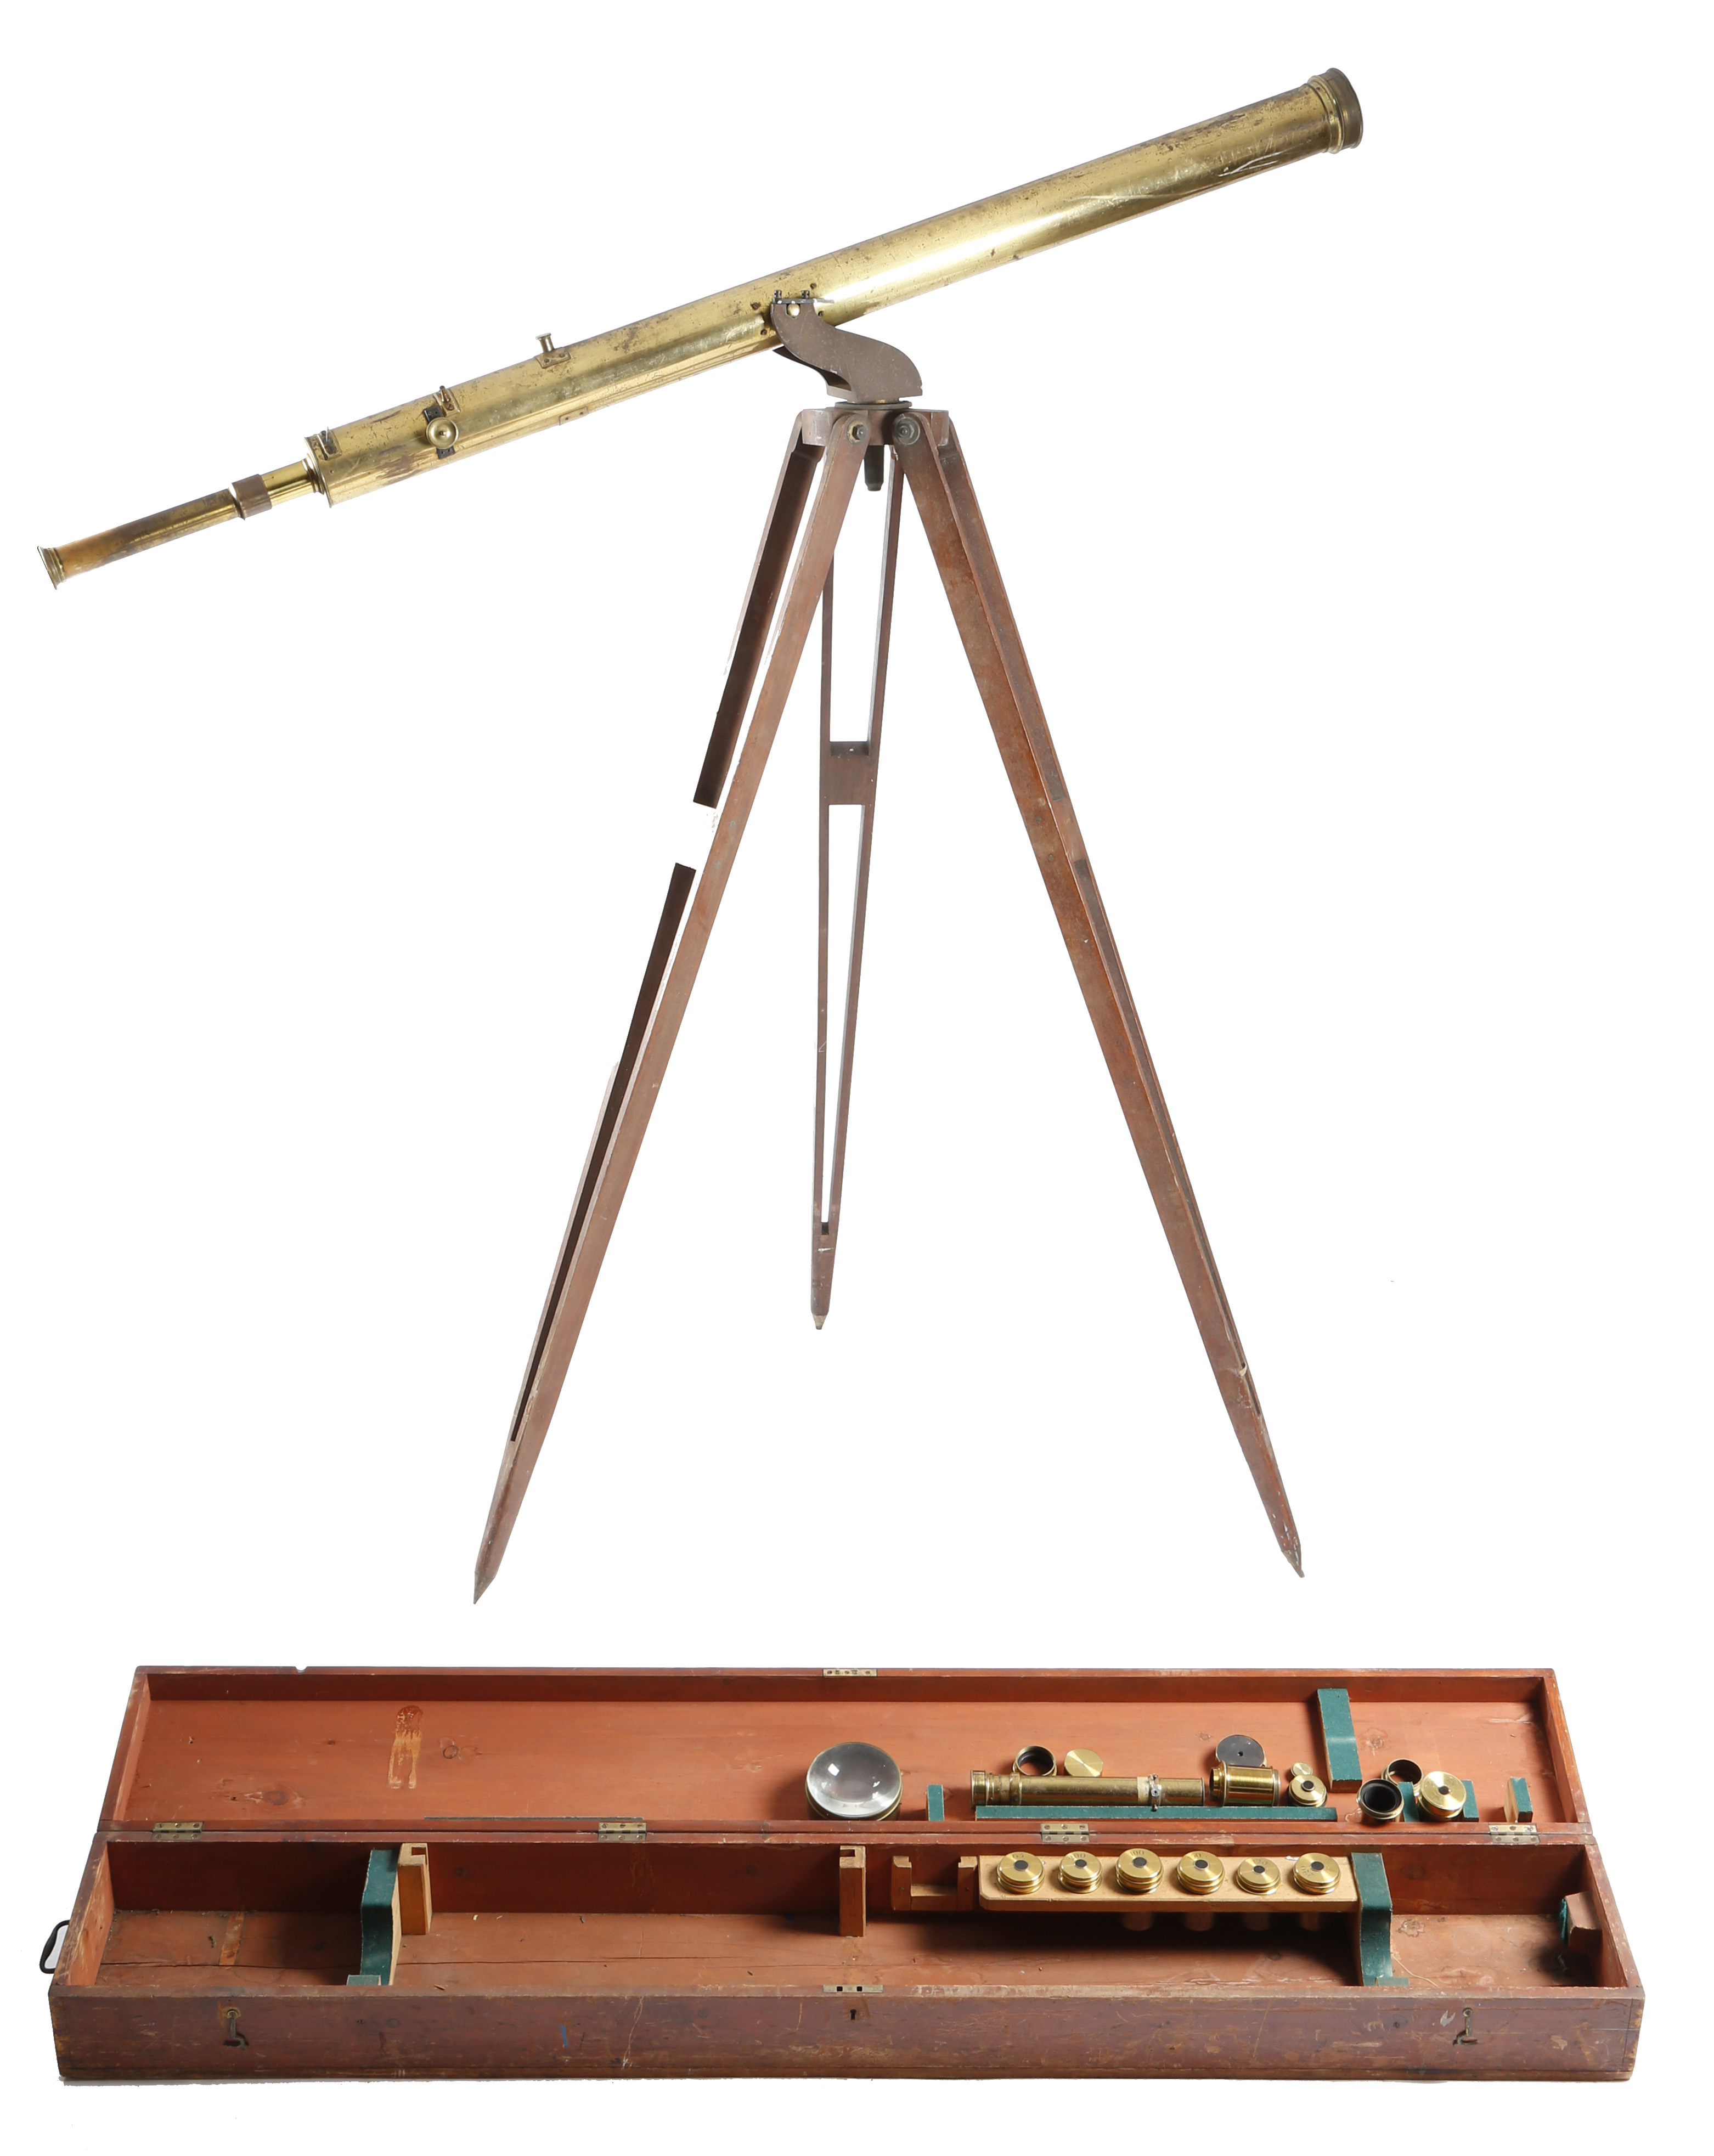 A 19TH CENTURY BRASS REFRACTING TELESCOPE BY DOLLOND OF LONDON